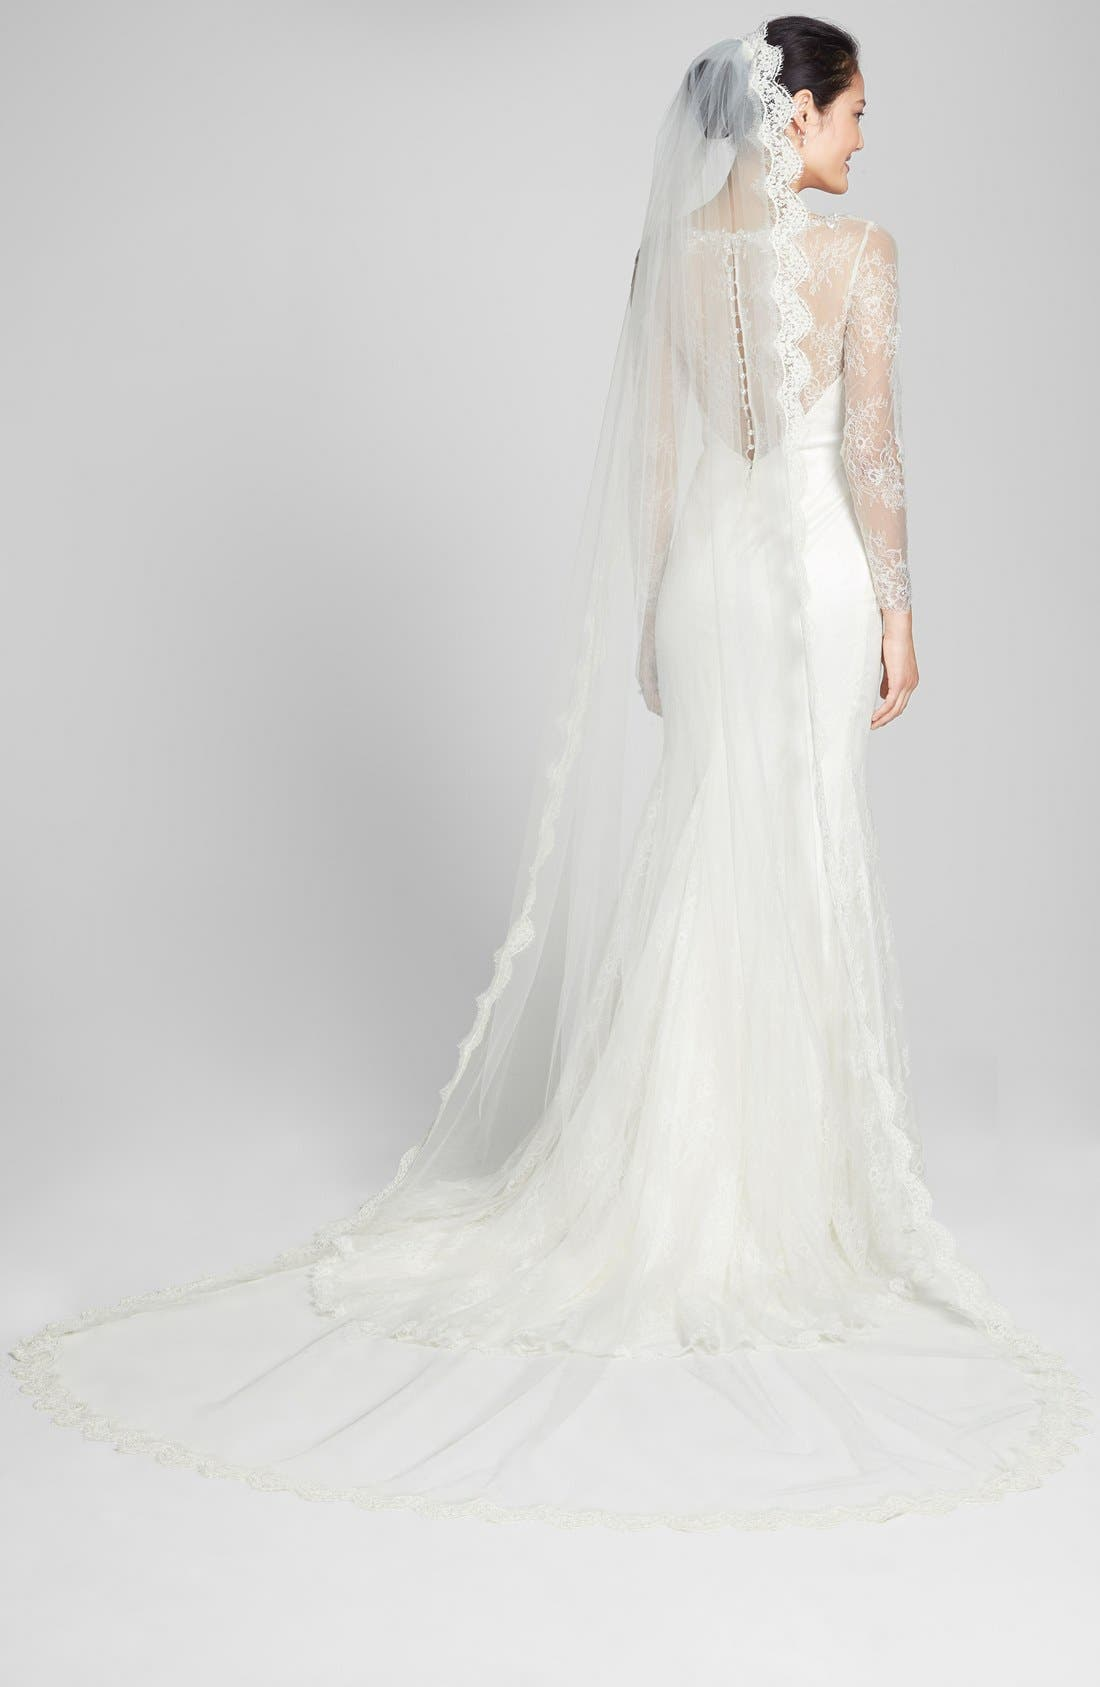 Alternate Image 1 Selected - Veil Trends Alençon Lace Cathedral Veil (Nordstrom Exclusive)